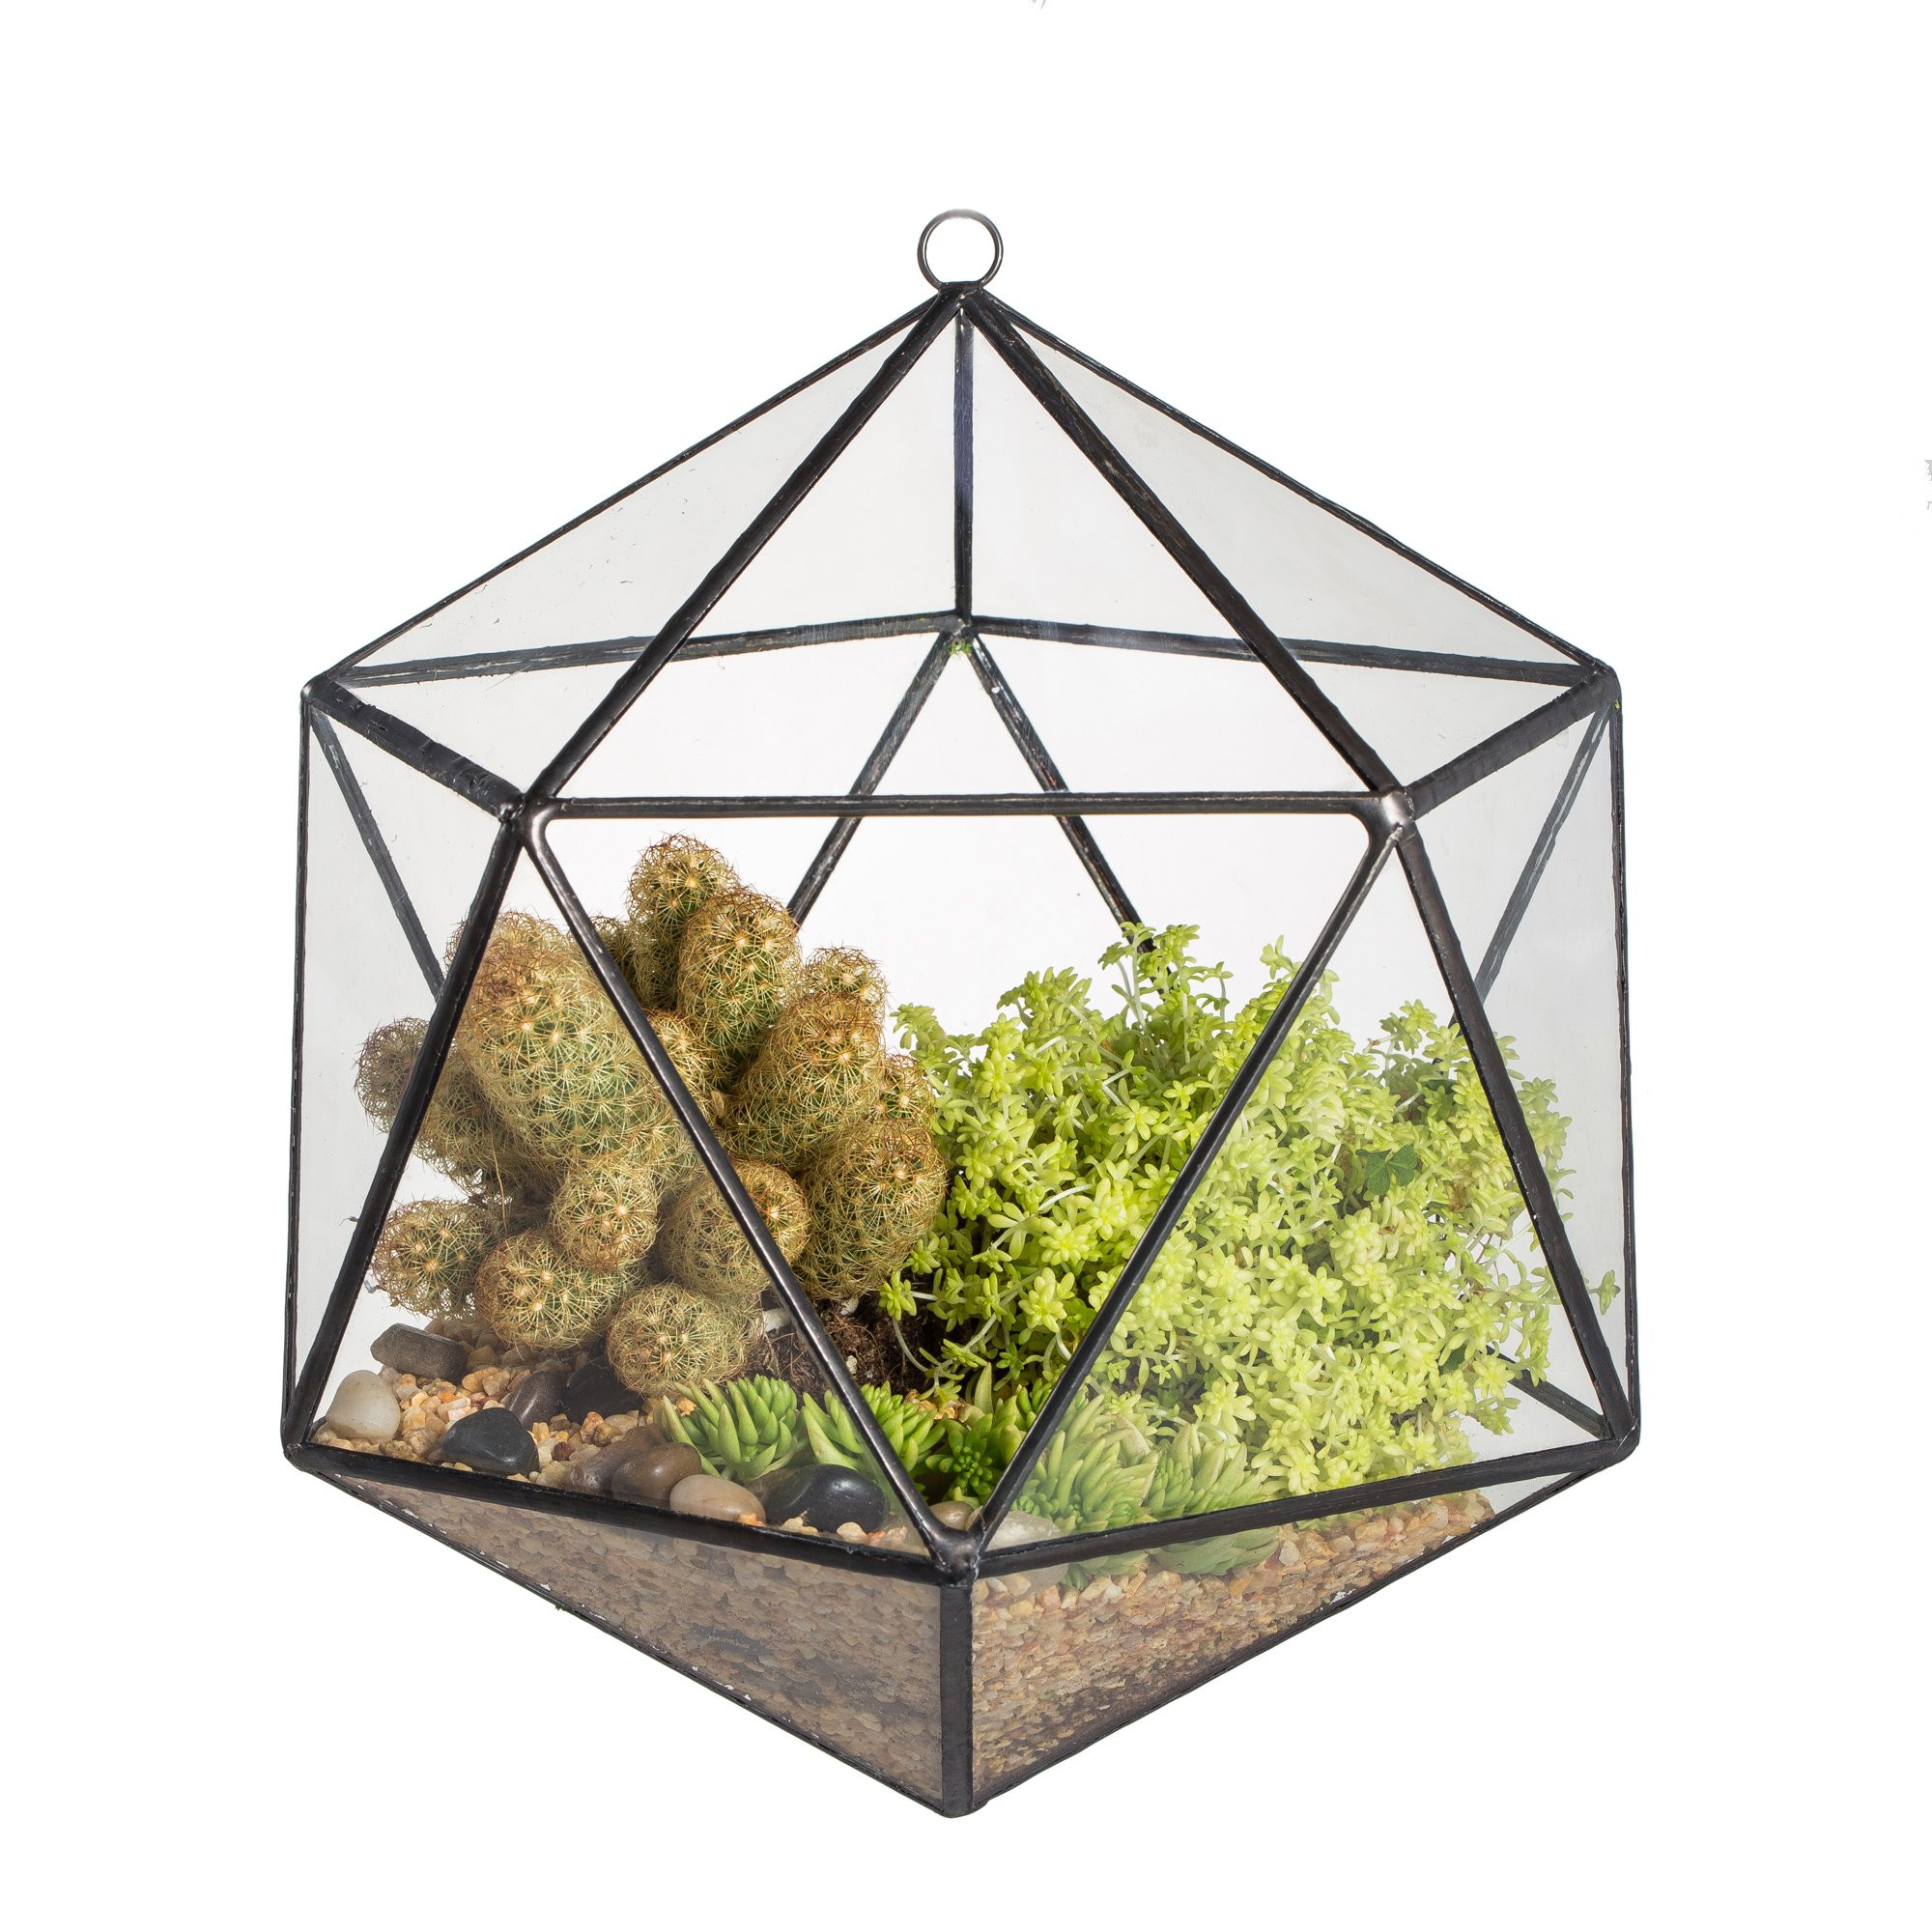 NCYP Wall Hanging Geometric Terrarium Balcony Tabletop Windowsill Decor Glass Flower Pot Modern Large Indoor Garden Micro Landscape Icosahedron Planter Container for Succulent Air Plant Fern